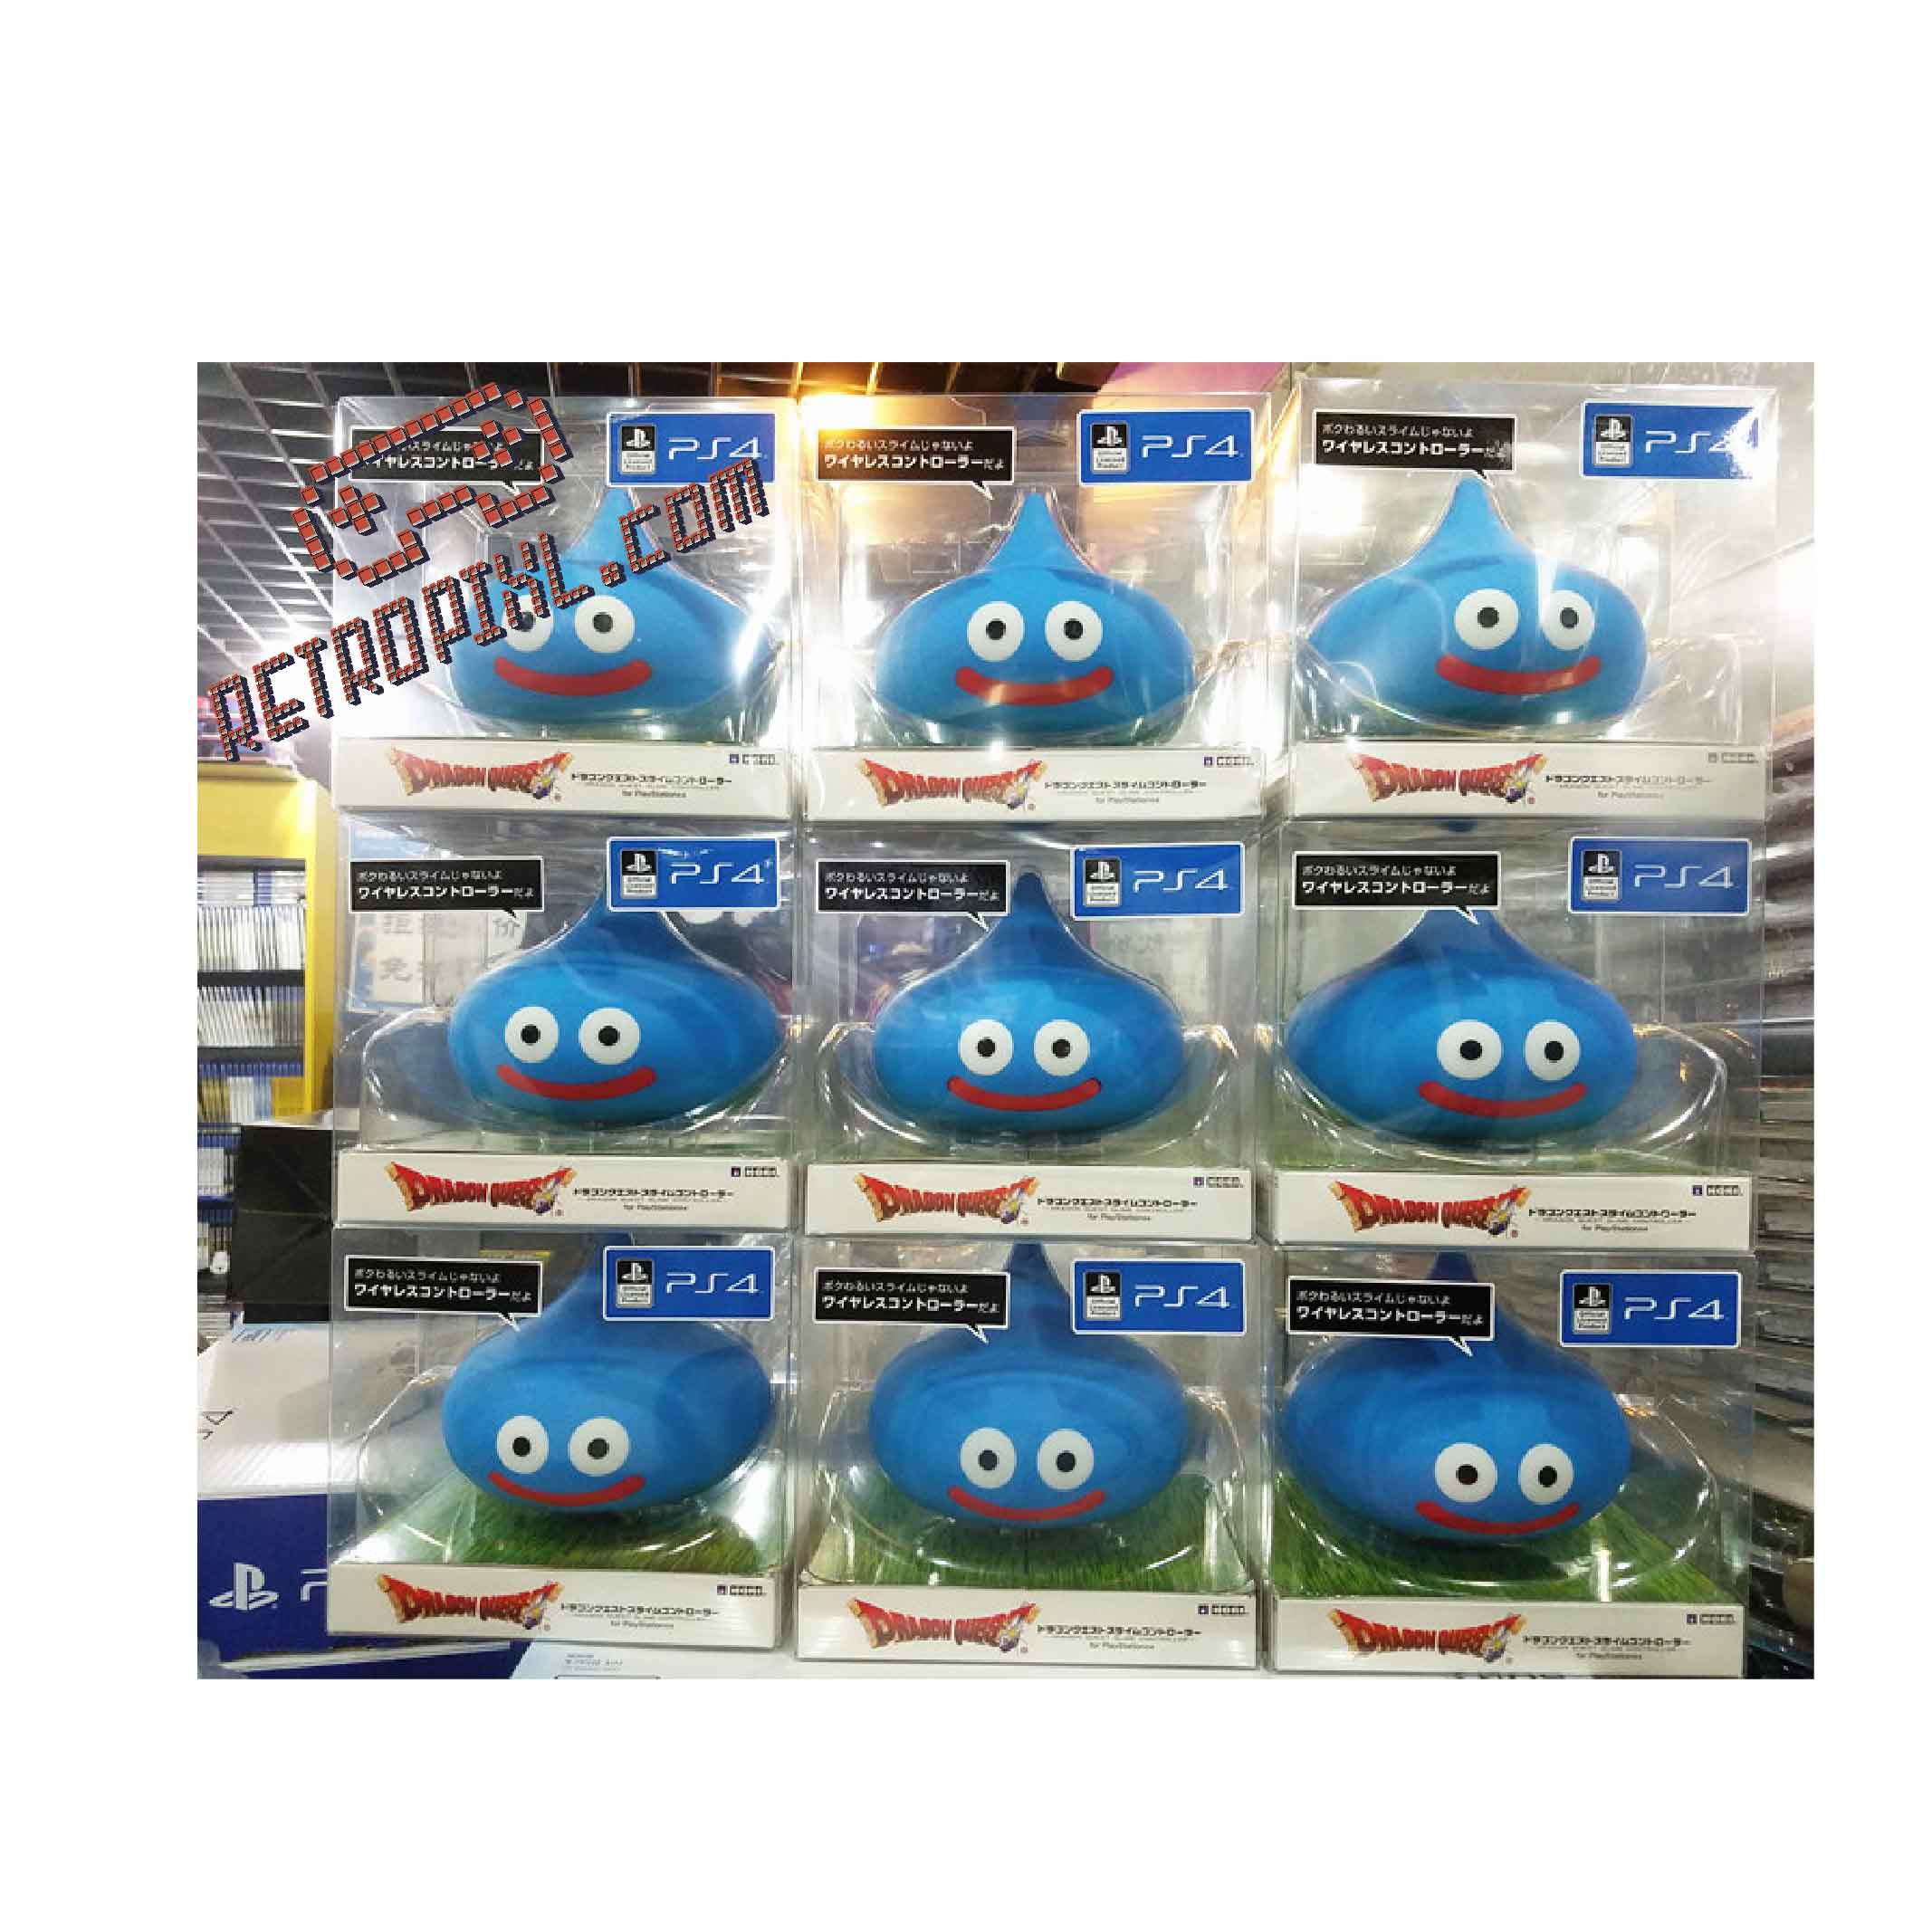 RetroPixl Retrogaming Limited Edition Hori - Dragon Quest Slime Controller for Playstation 4 (PS4)